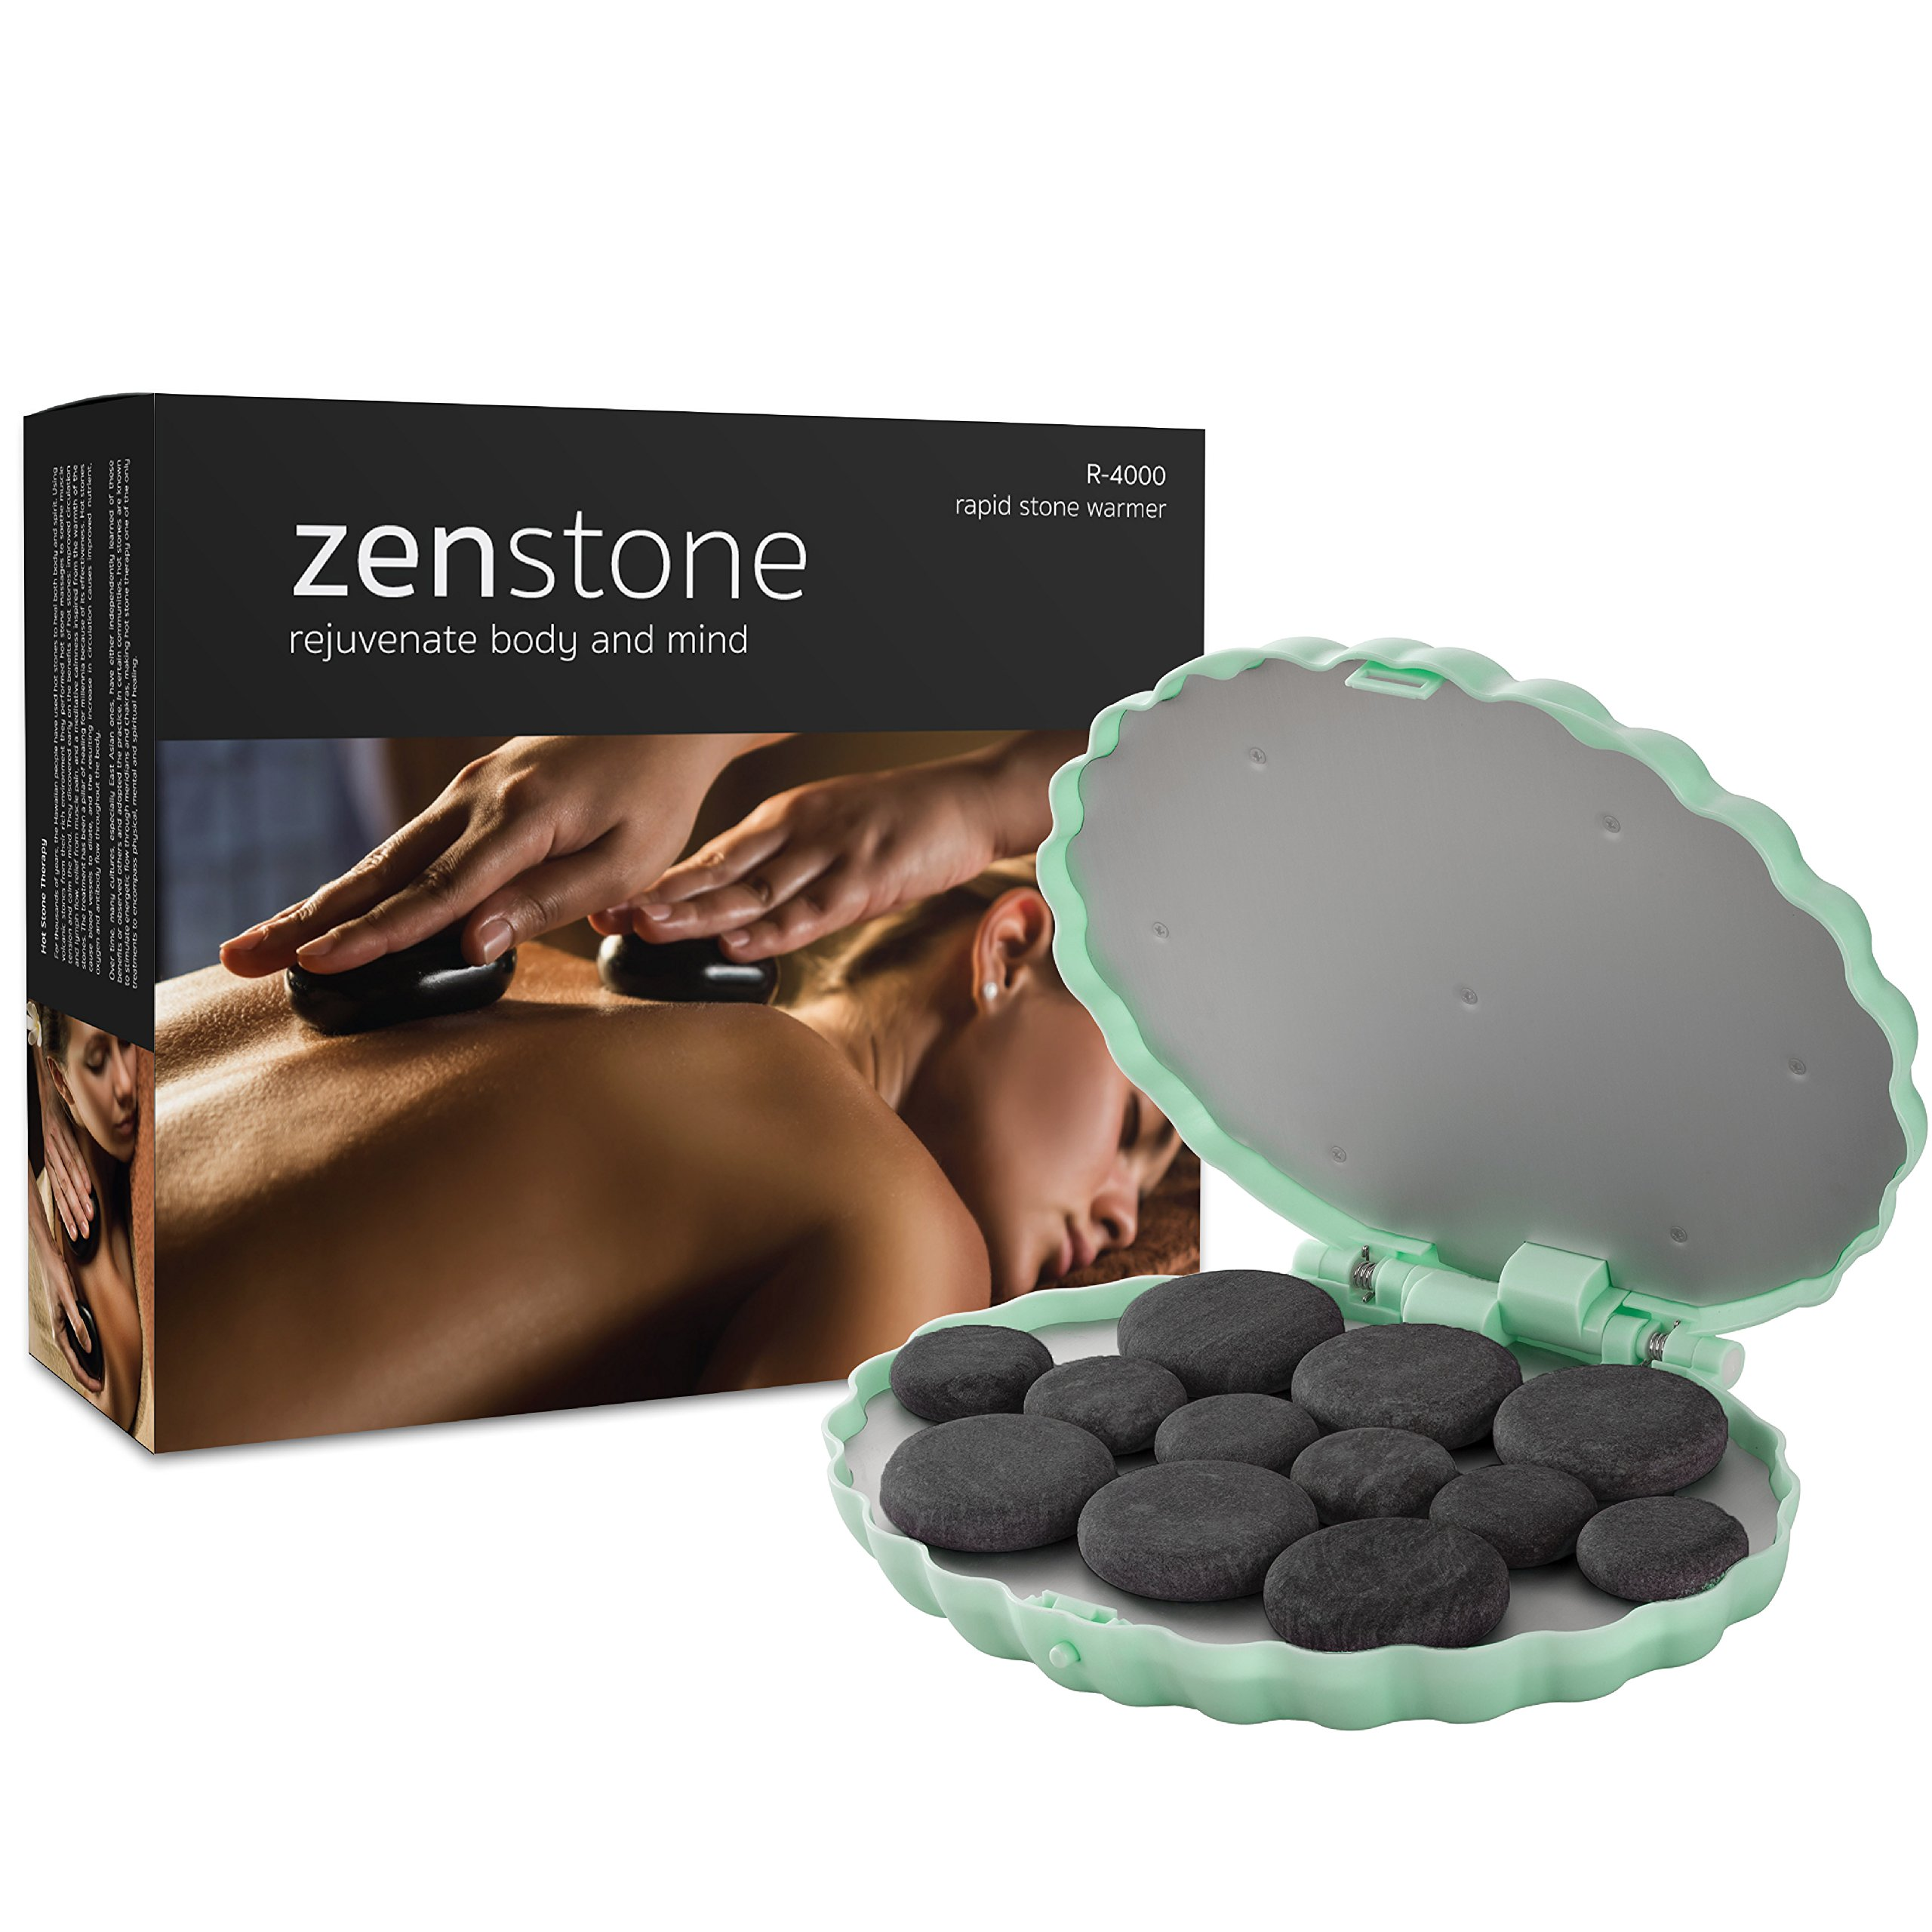 ZENSTONE Professional Hot Stone Therapy Kit – Rapid Waterless Tech – 12 Stones Included | Massage Warmer (Spa Green)